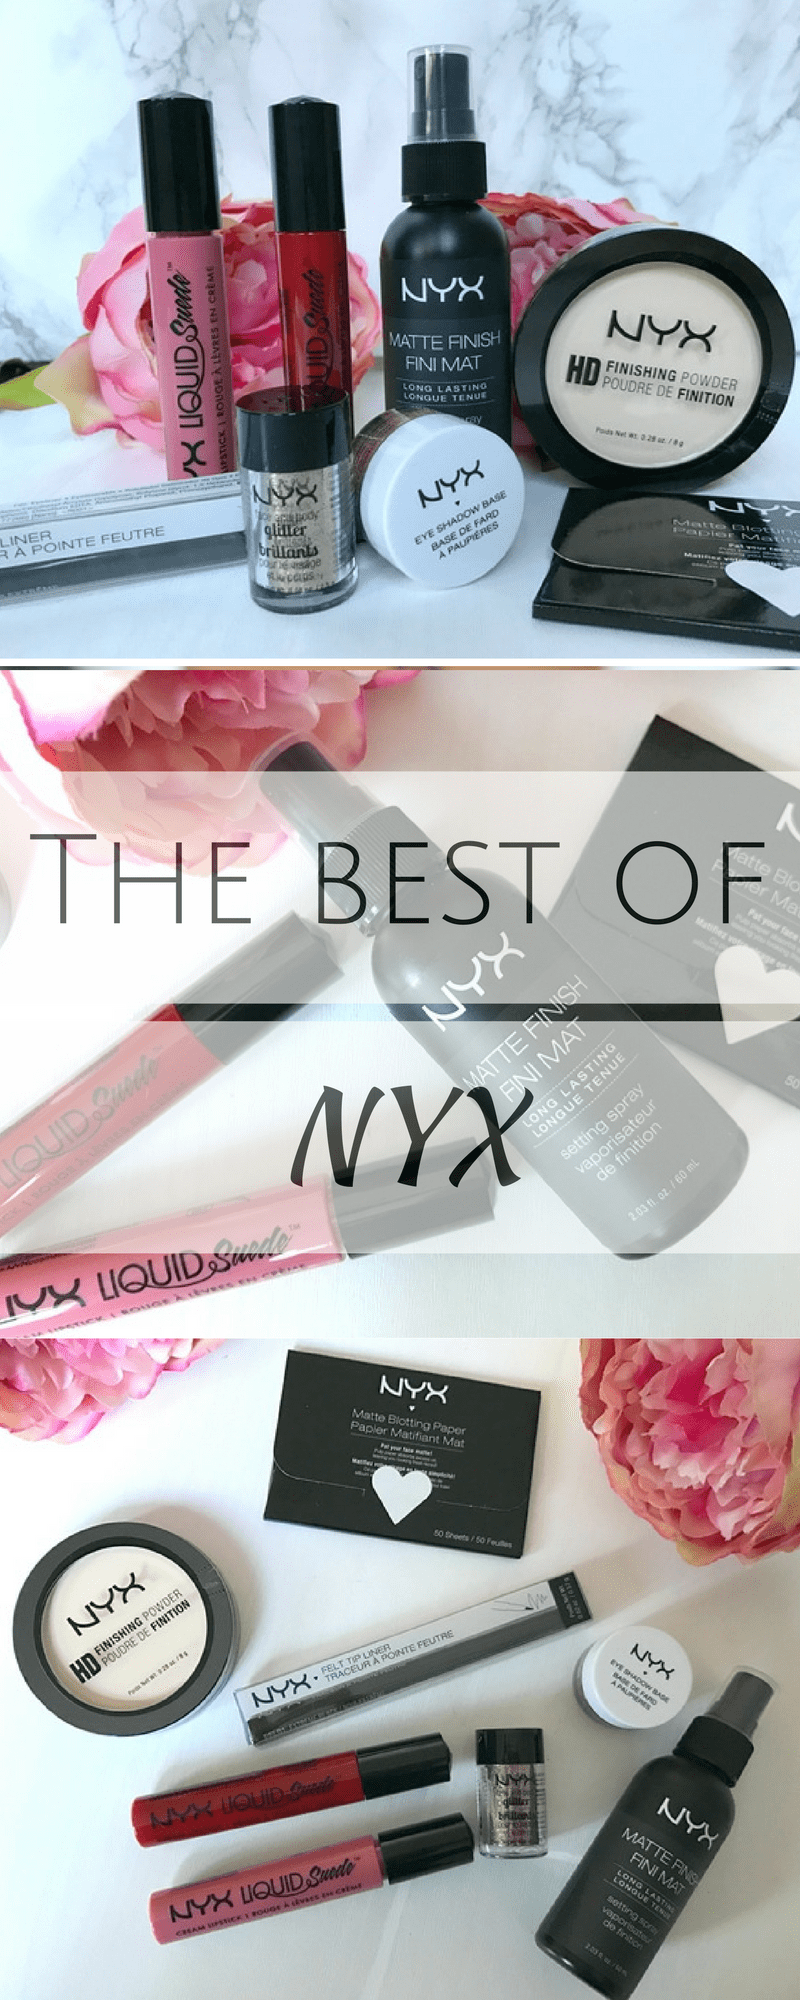 The Best of NYX Right Now ♥